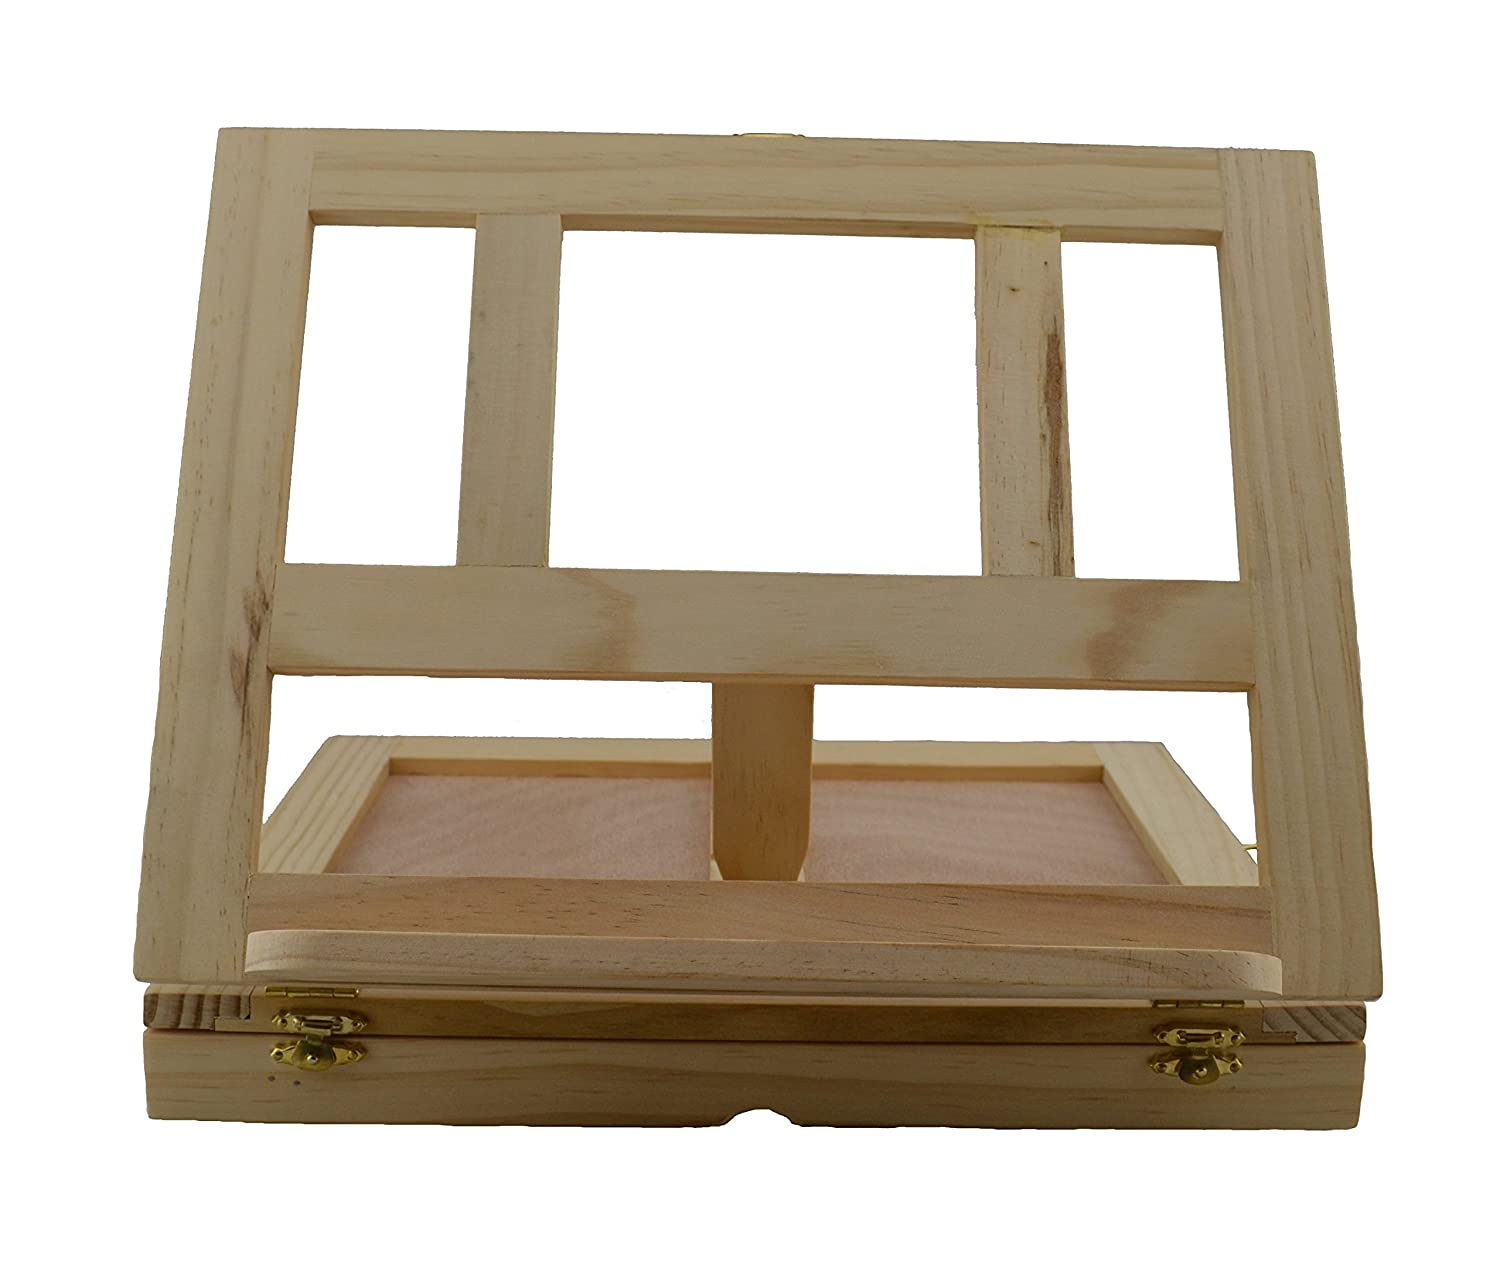 Table top drawing easel - Amazon Com Strokes Art Supplies Artistic Wooden Desk Easel W13 Inch H10 Inch D2 Inch With Drawer Includes Free Wooden Palette